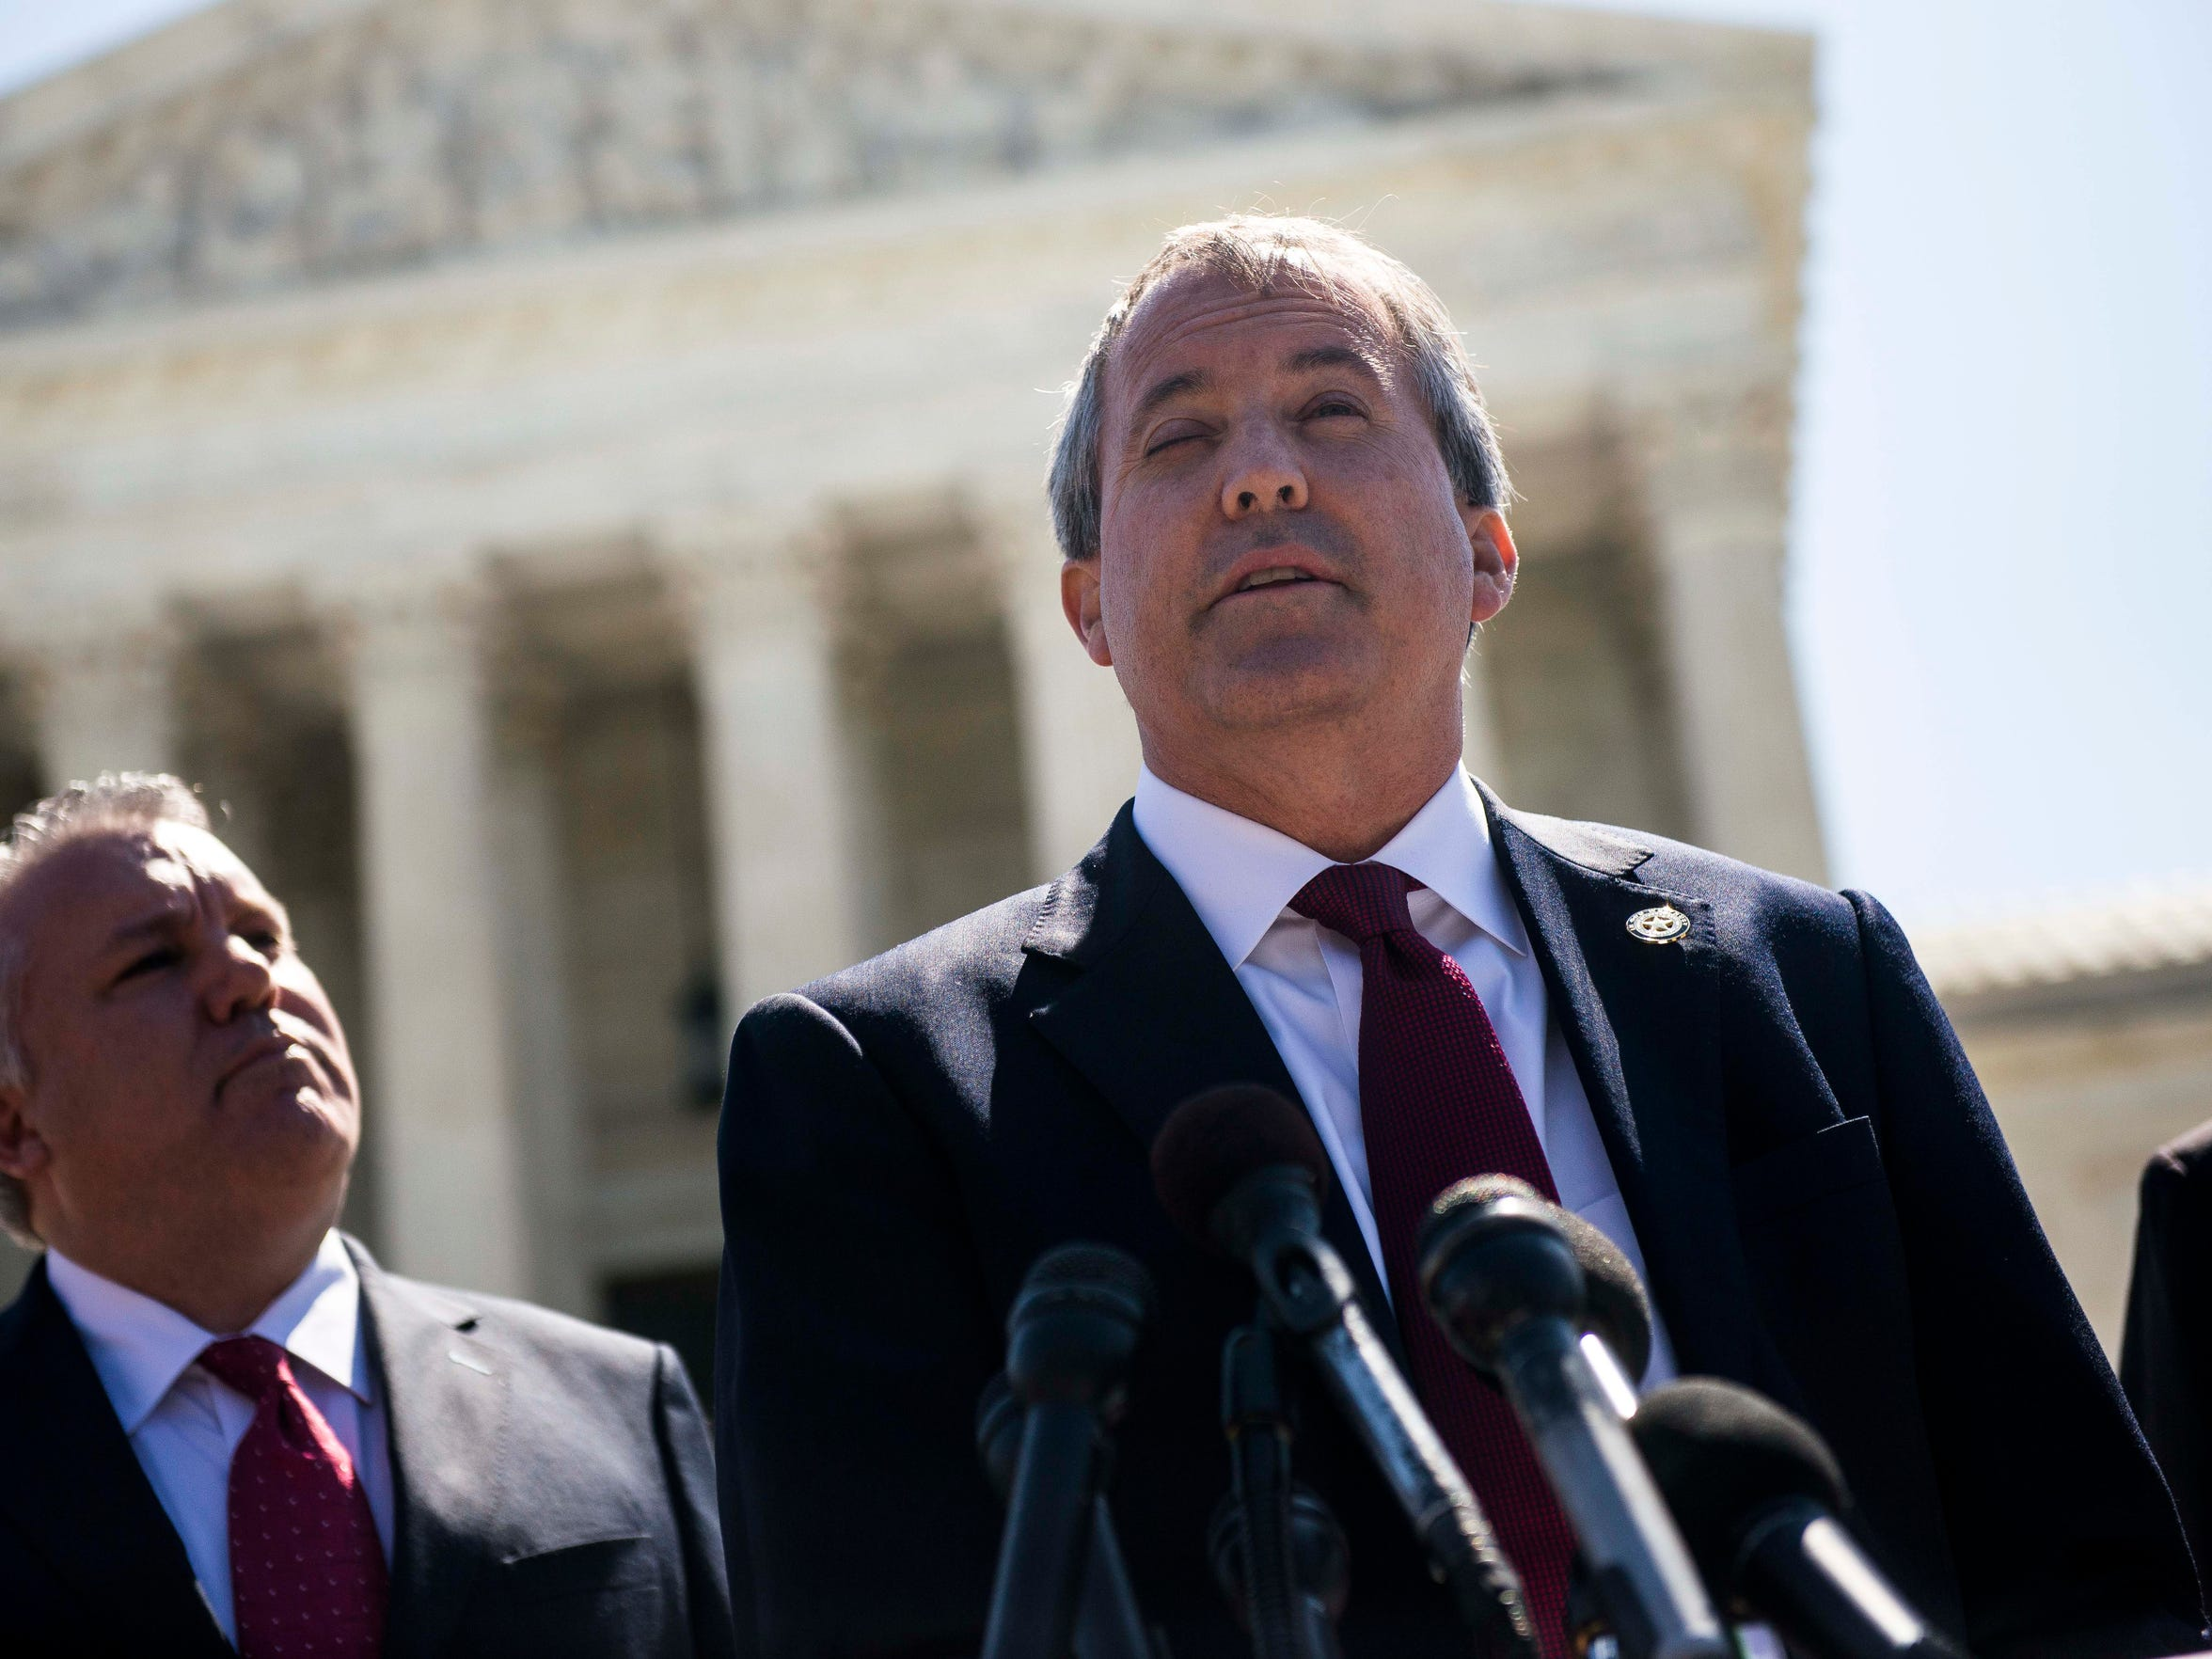 Texas Attorney General Ken Paxton speaks to reporters at a news conference outside the Supreme Court on Capitol Hill on June 9, 2016, in Washington, D.C. Paxton announced a lawsuit against the state of Delaware over unclaimed checks.